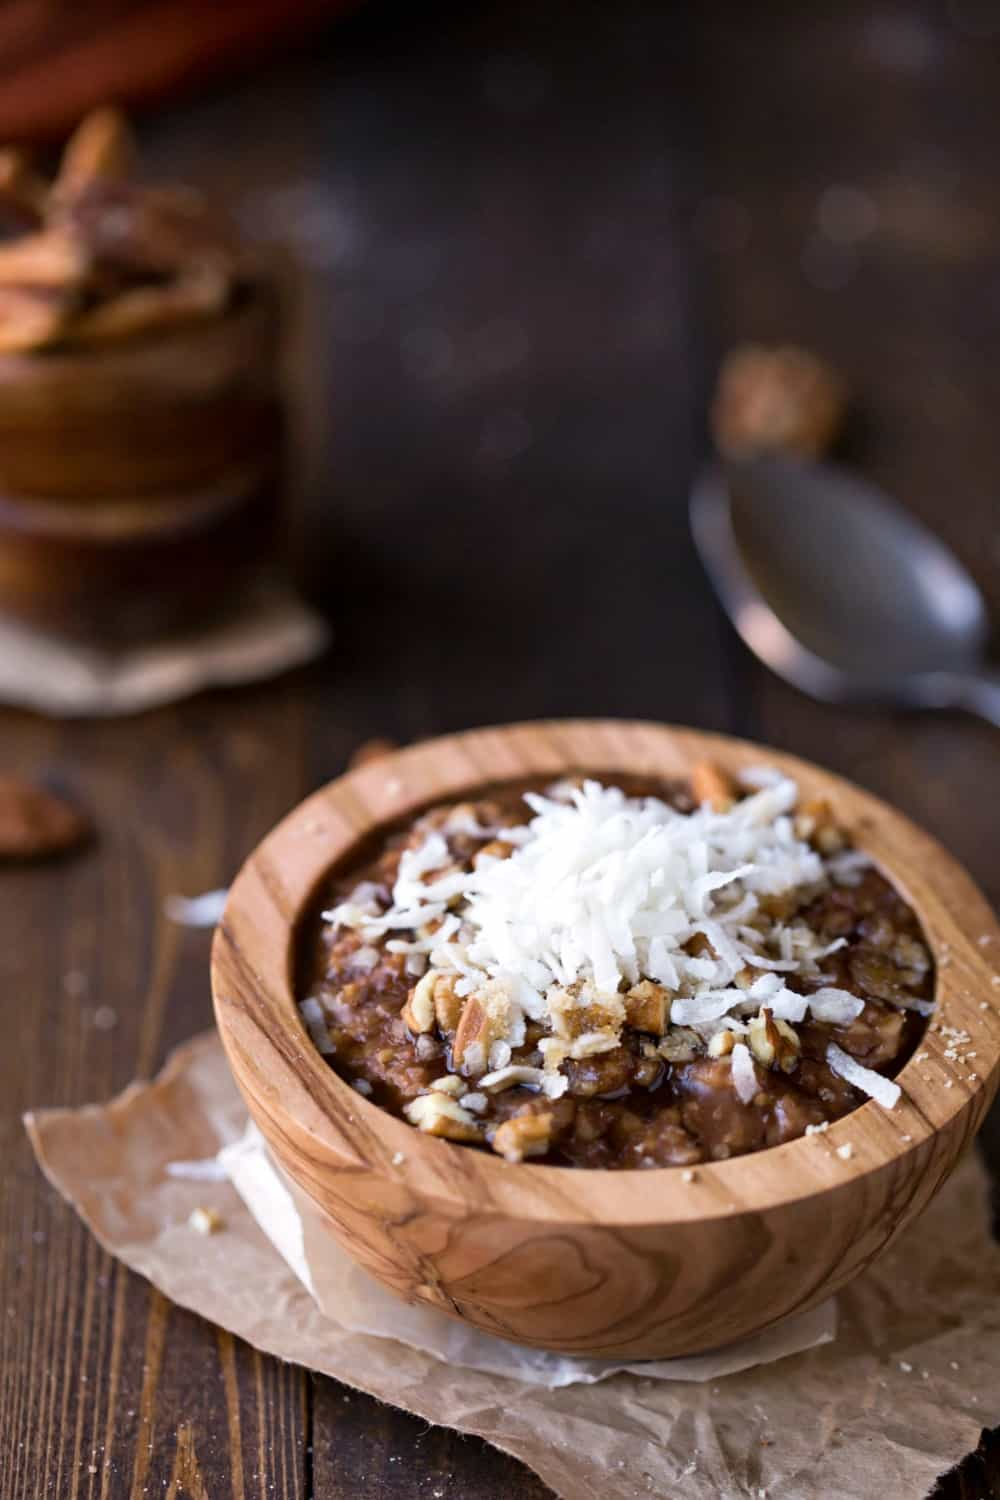 Crock Pot German Chocolate Oatmeal topped with coconut and pecans in a wooden bowl next to a spoon